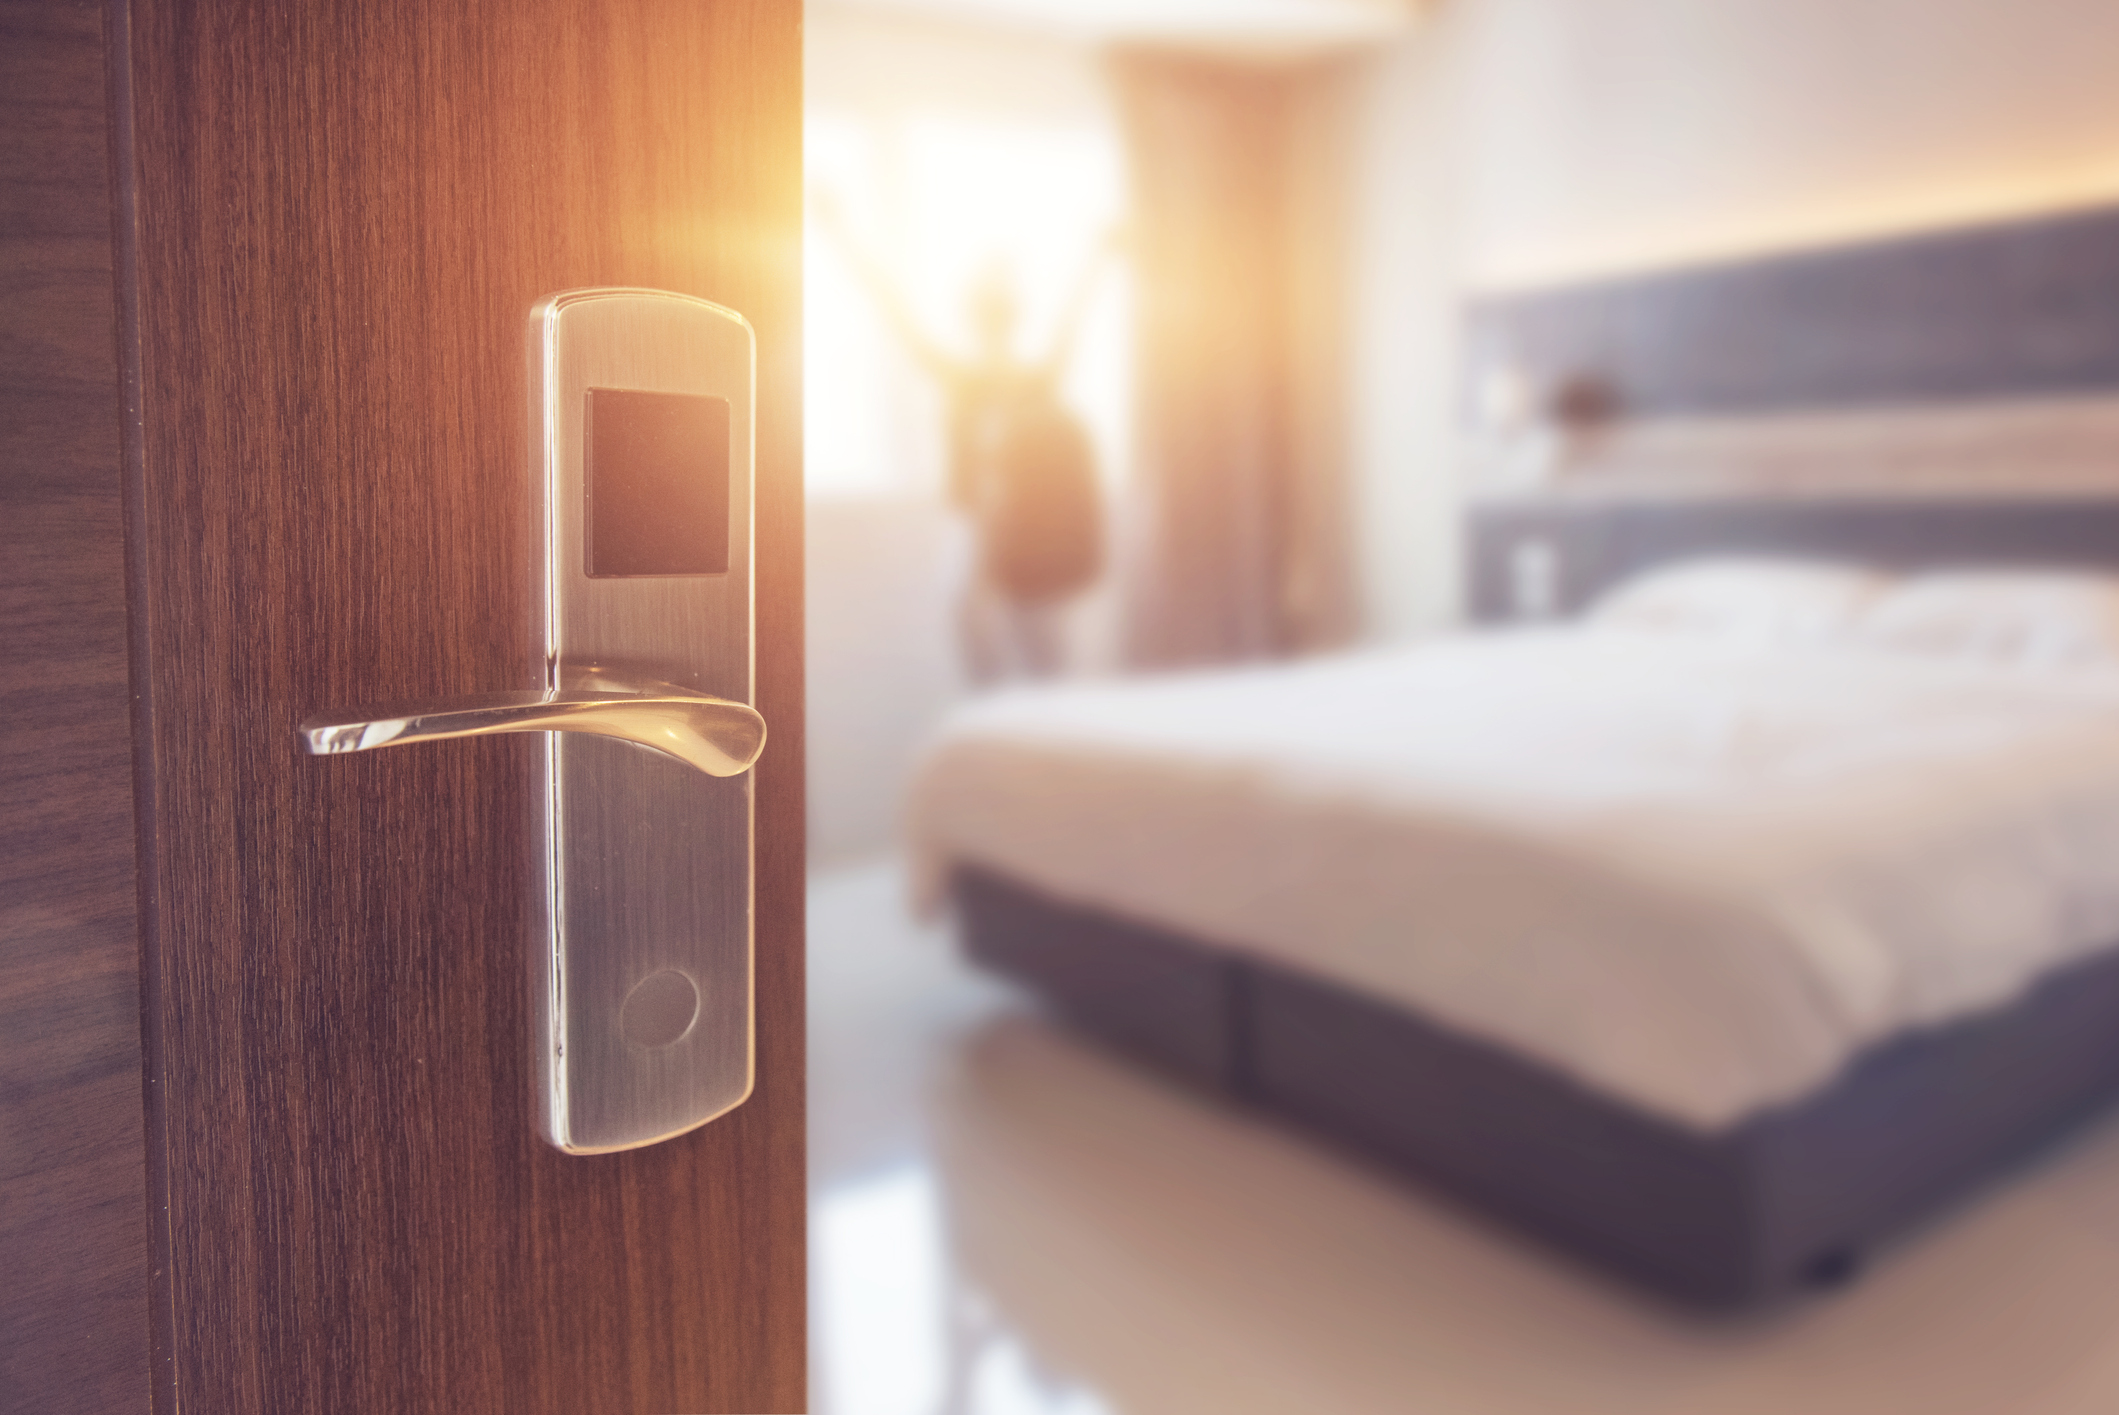 OPINION: How getting personal could bring the hotel industry back